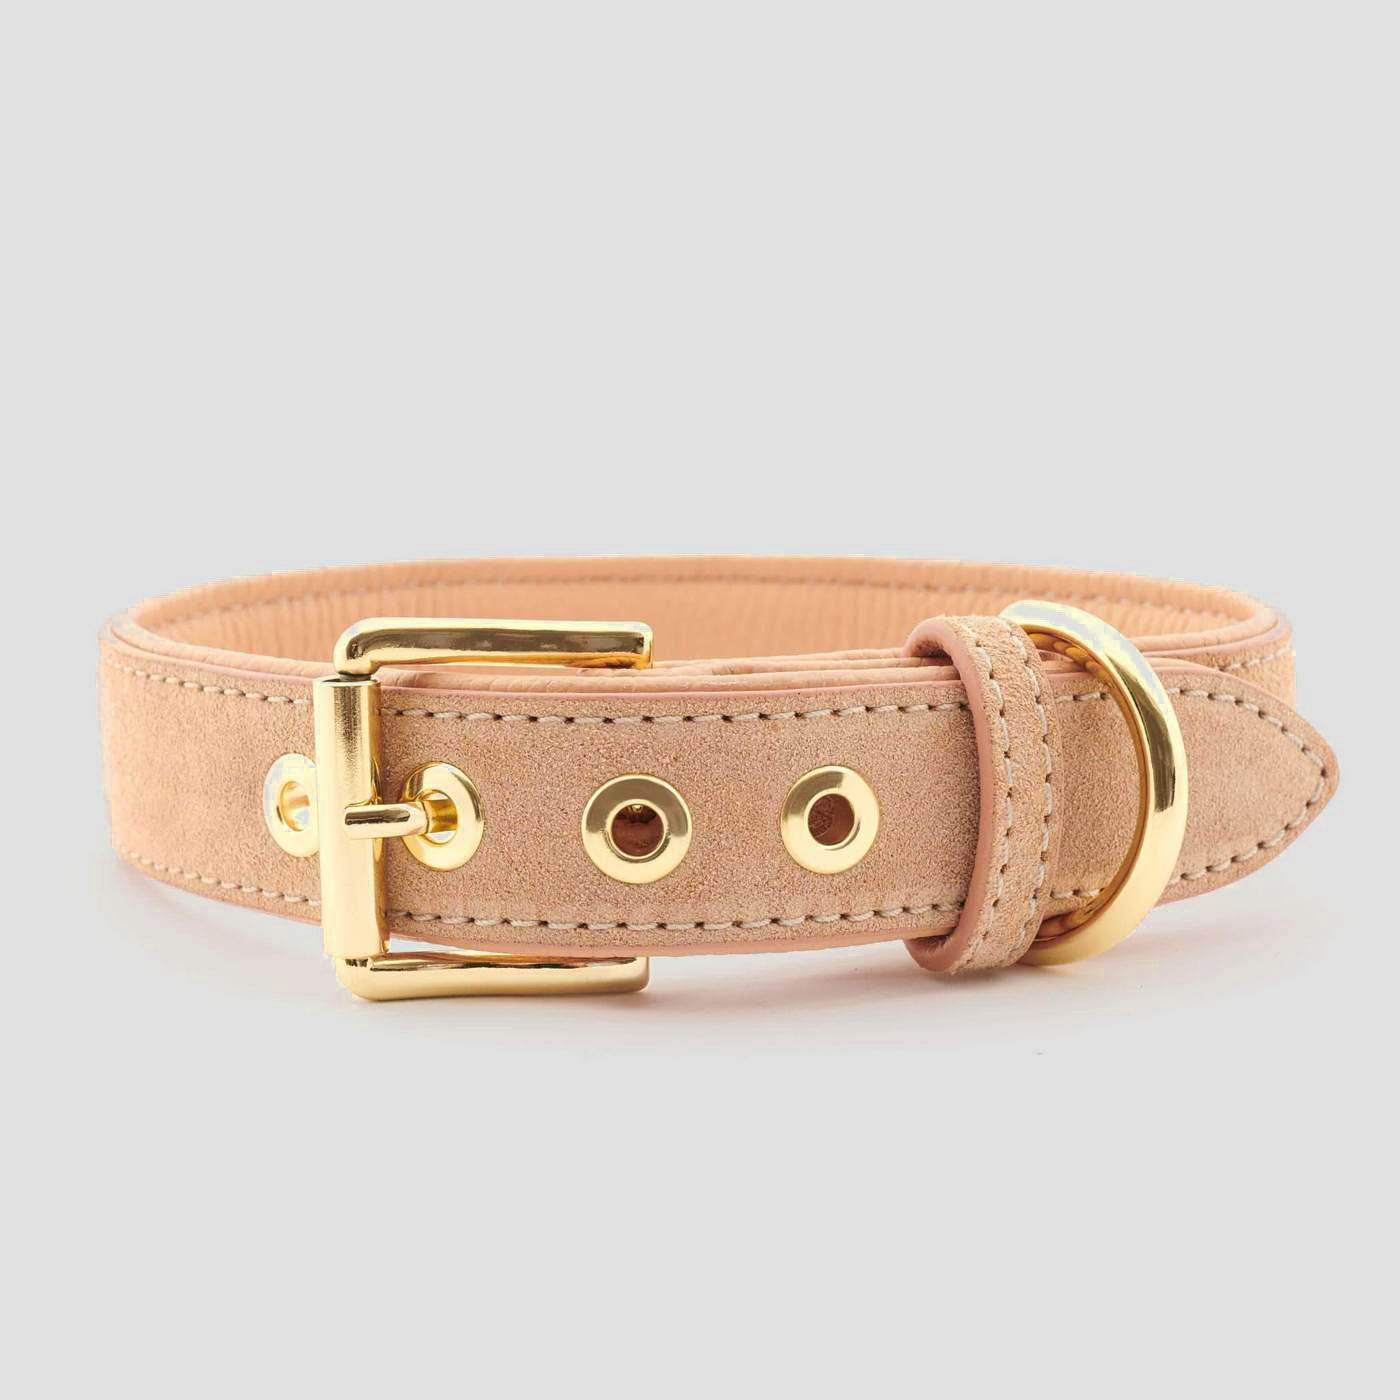 William Walker Leather Dog Collar